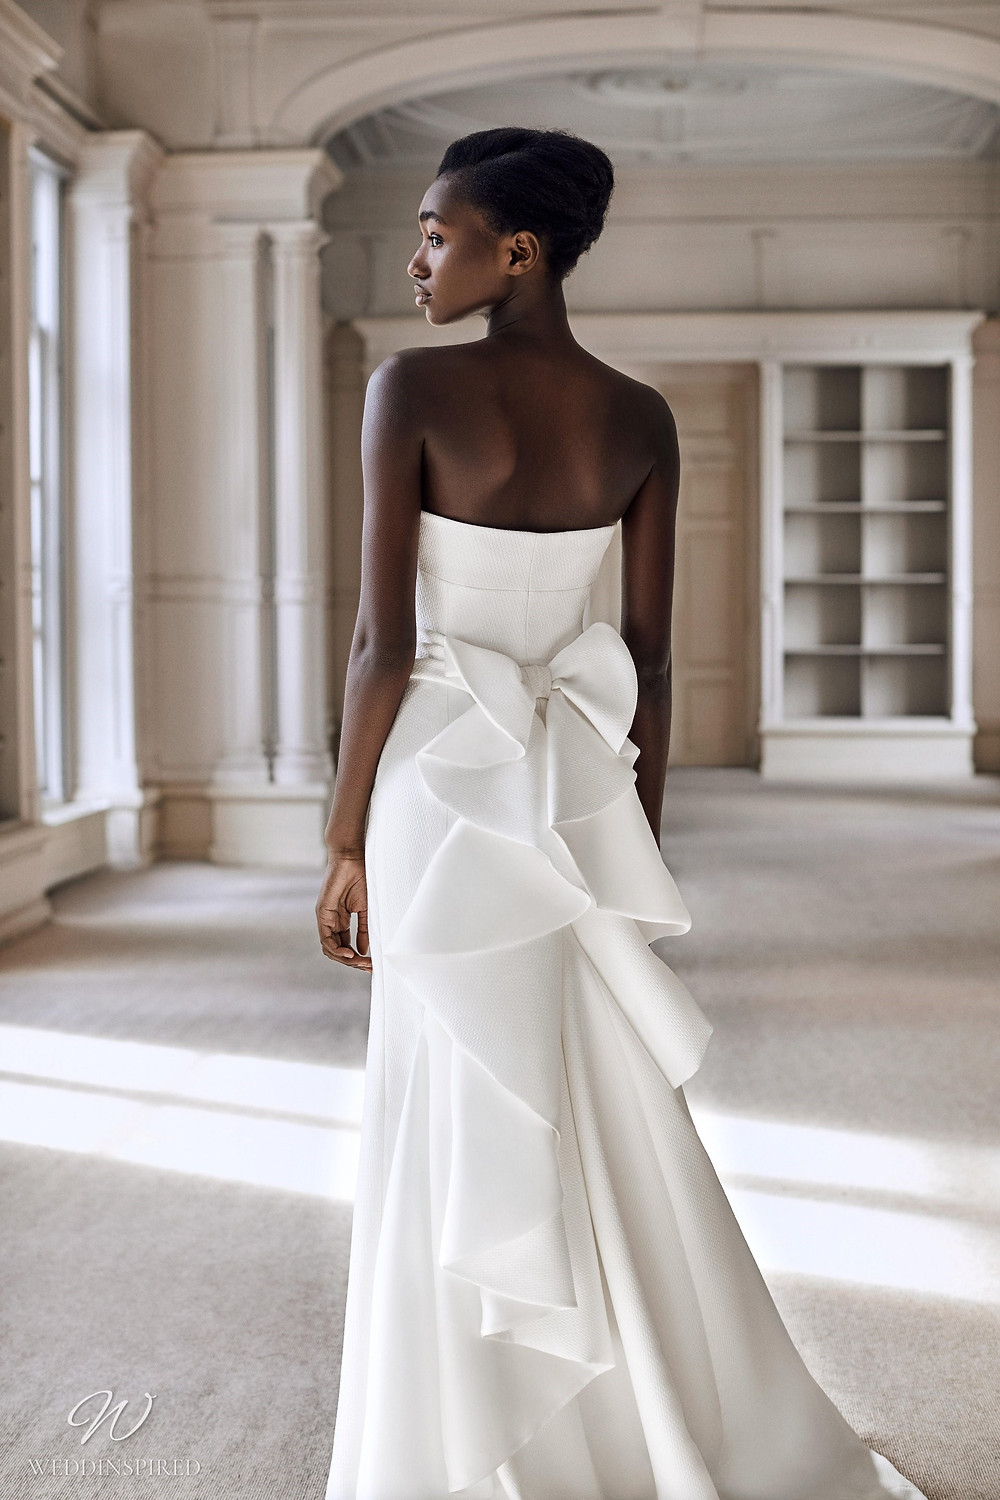 A Viktor & Rolf 2021 A-line wedding dress with bows and ruffles